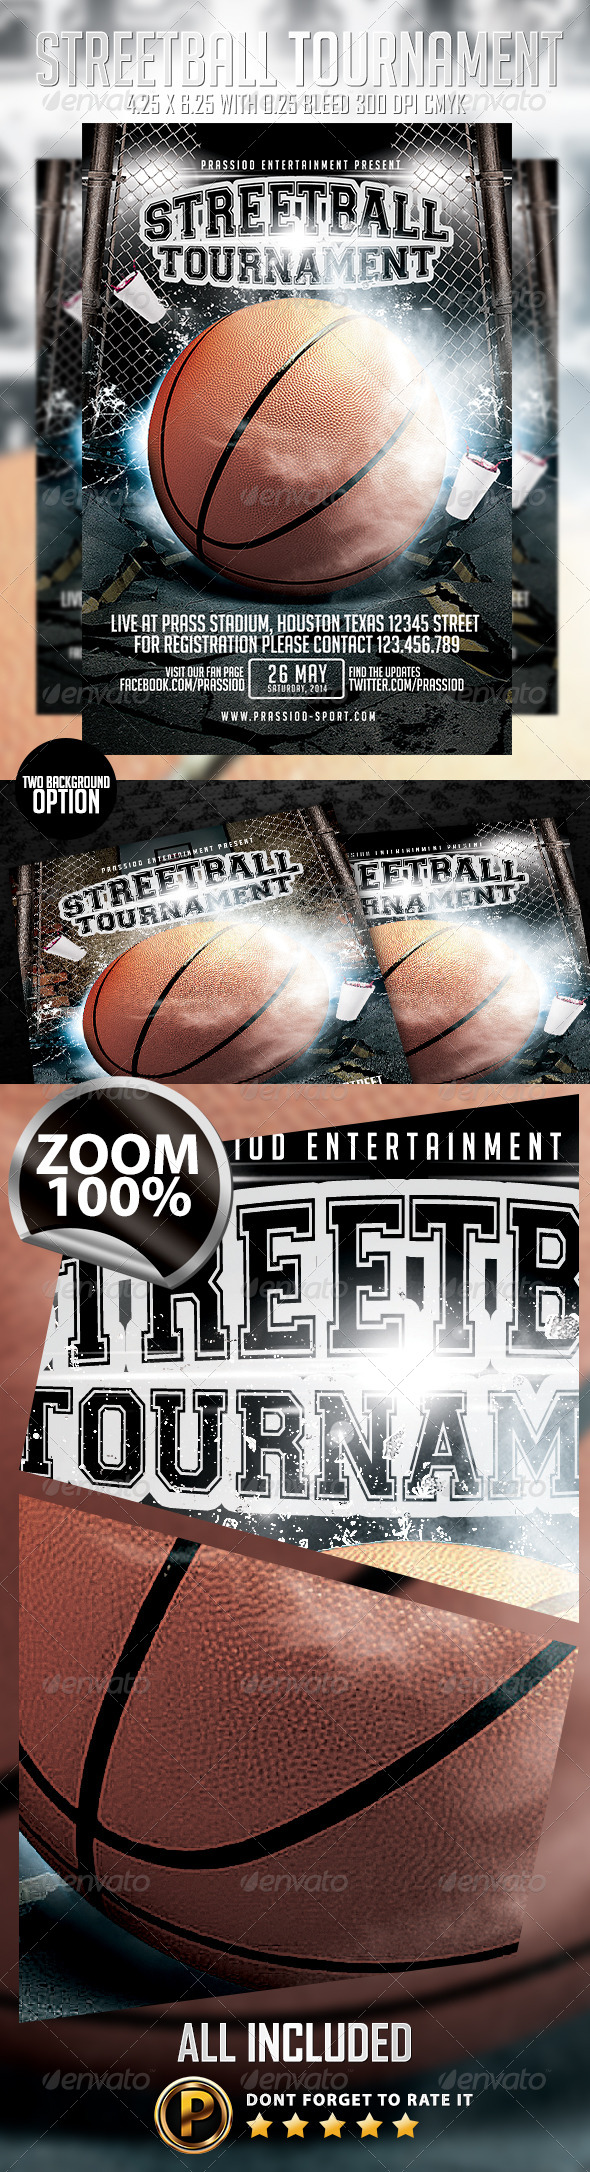 Streetball Tournament Flyer Template - Sports Events